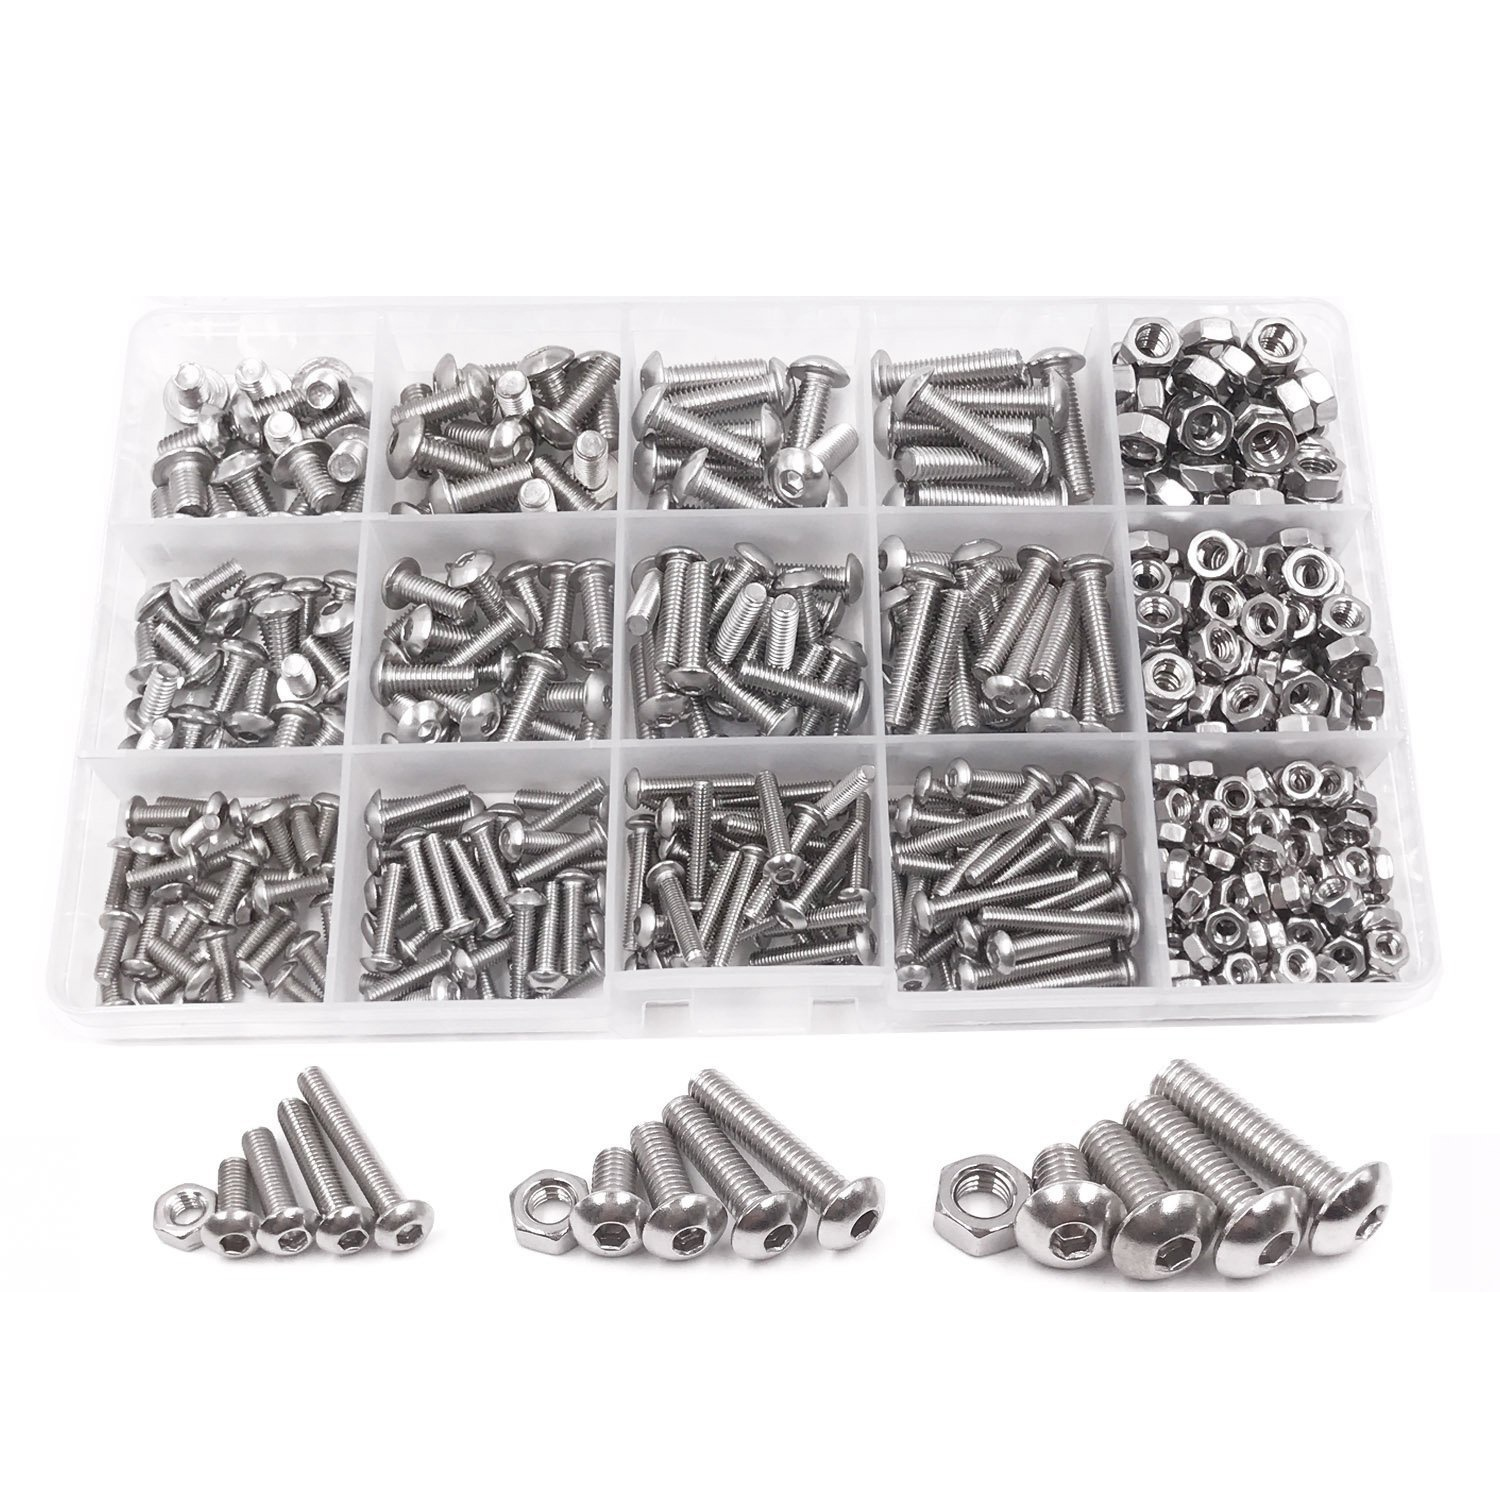 Hot sale 500pcs M3 M4 M5 A2 Stainless Steel ISO7380 Button Head Hex Bolts Hexagon Socket Screws With